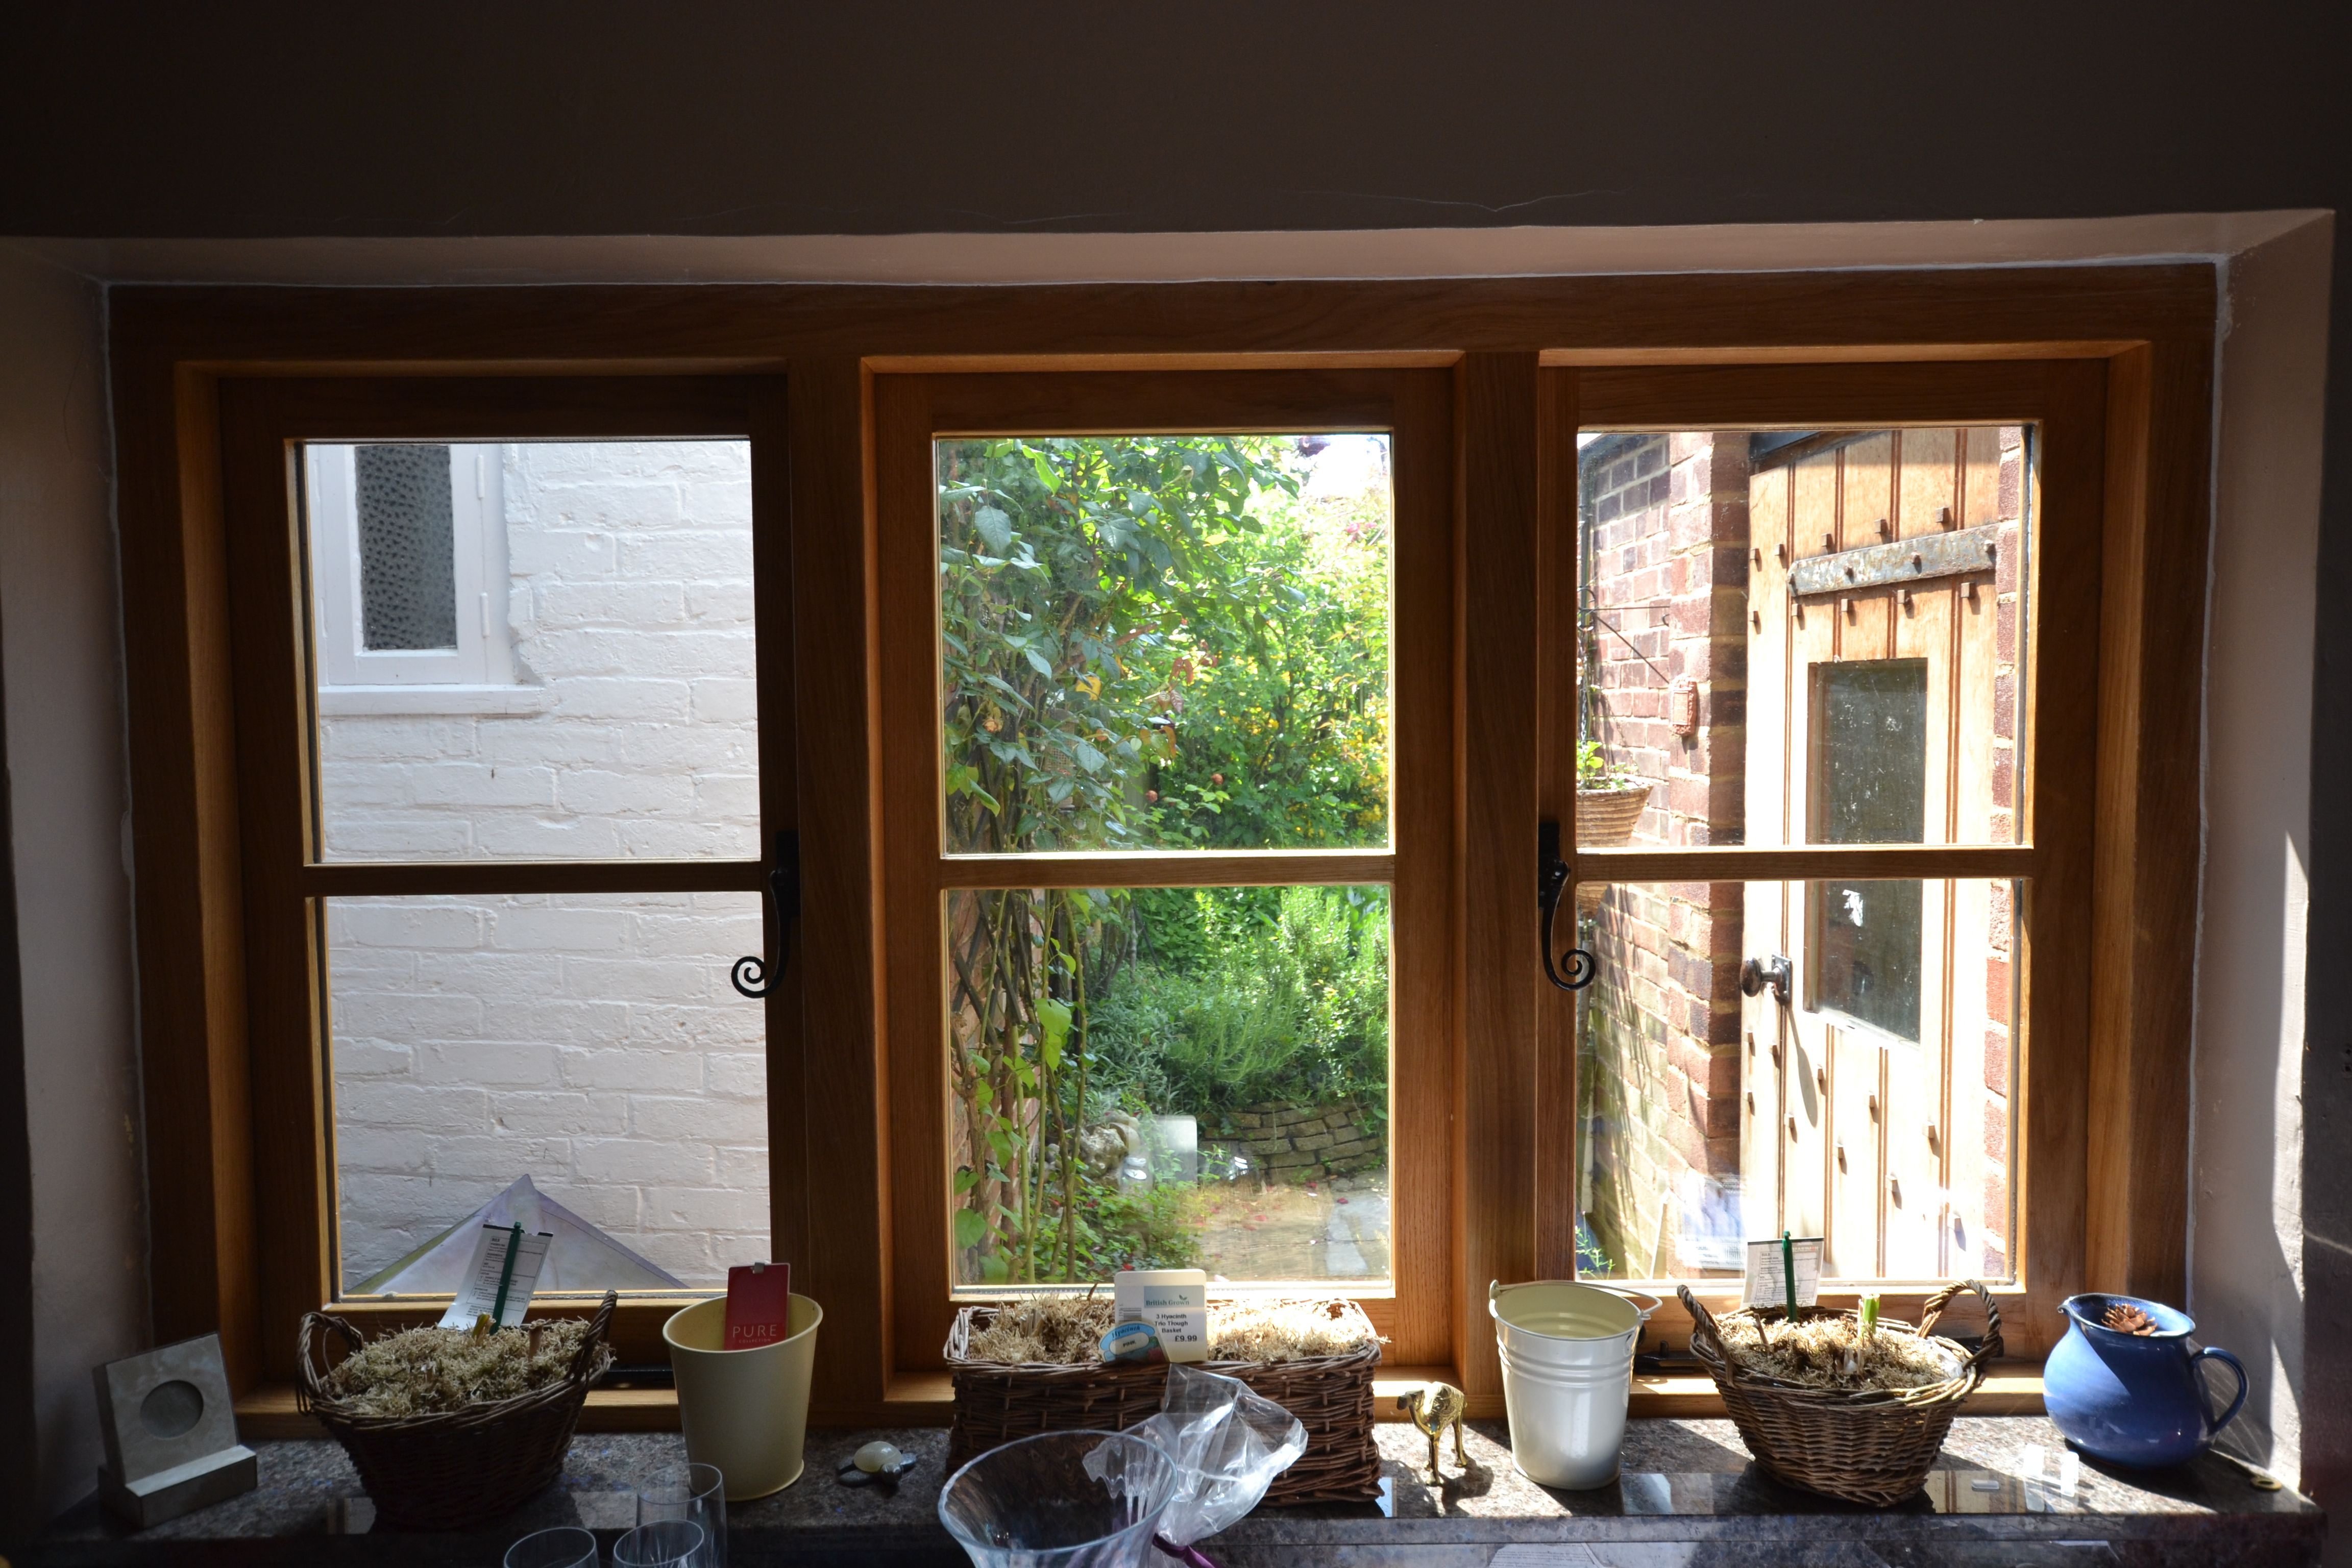 Purpose built and hand crafted windows to bring light into this classic country kitchen. #windows #light #bespoke